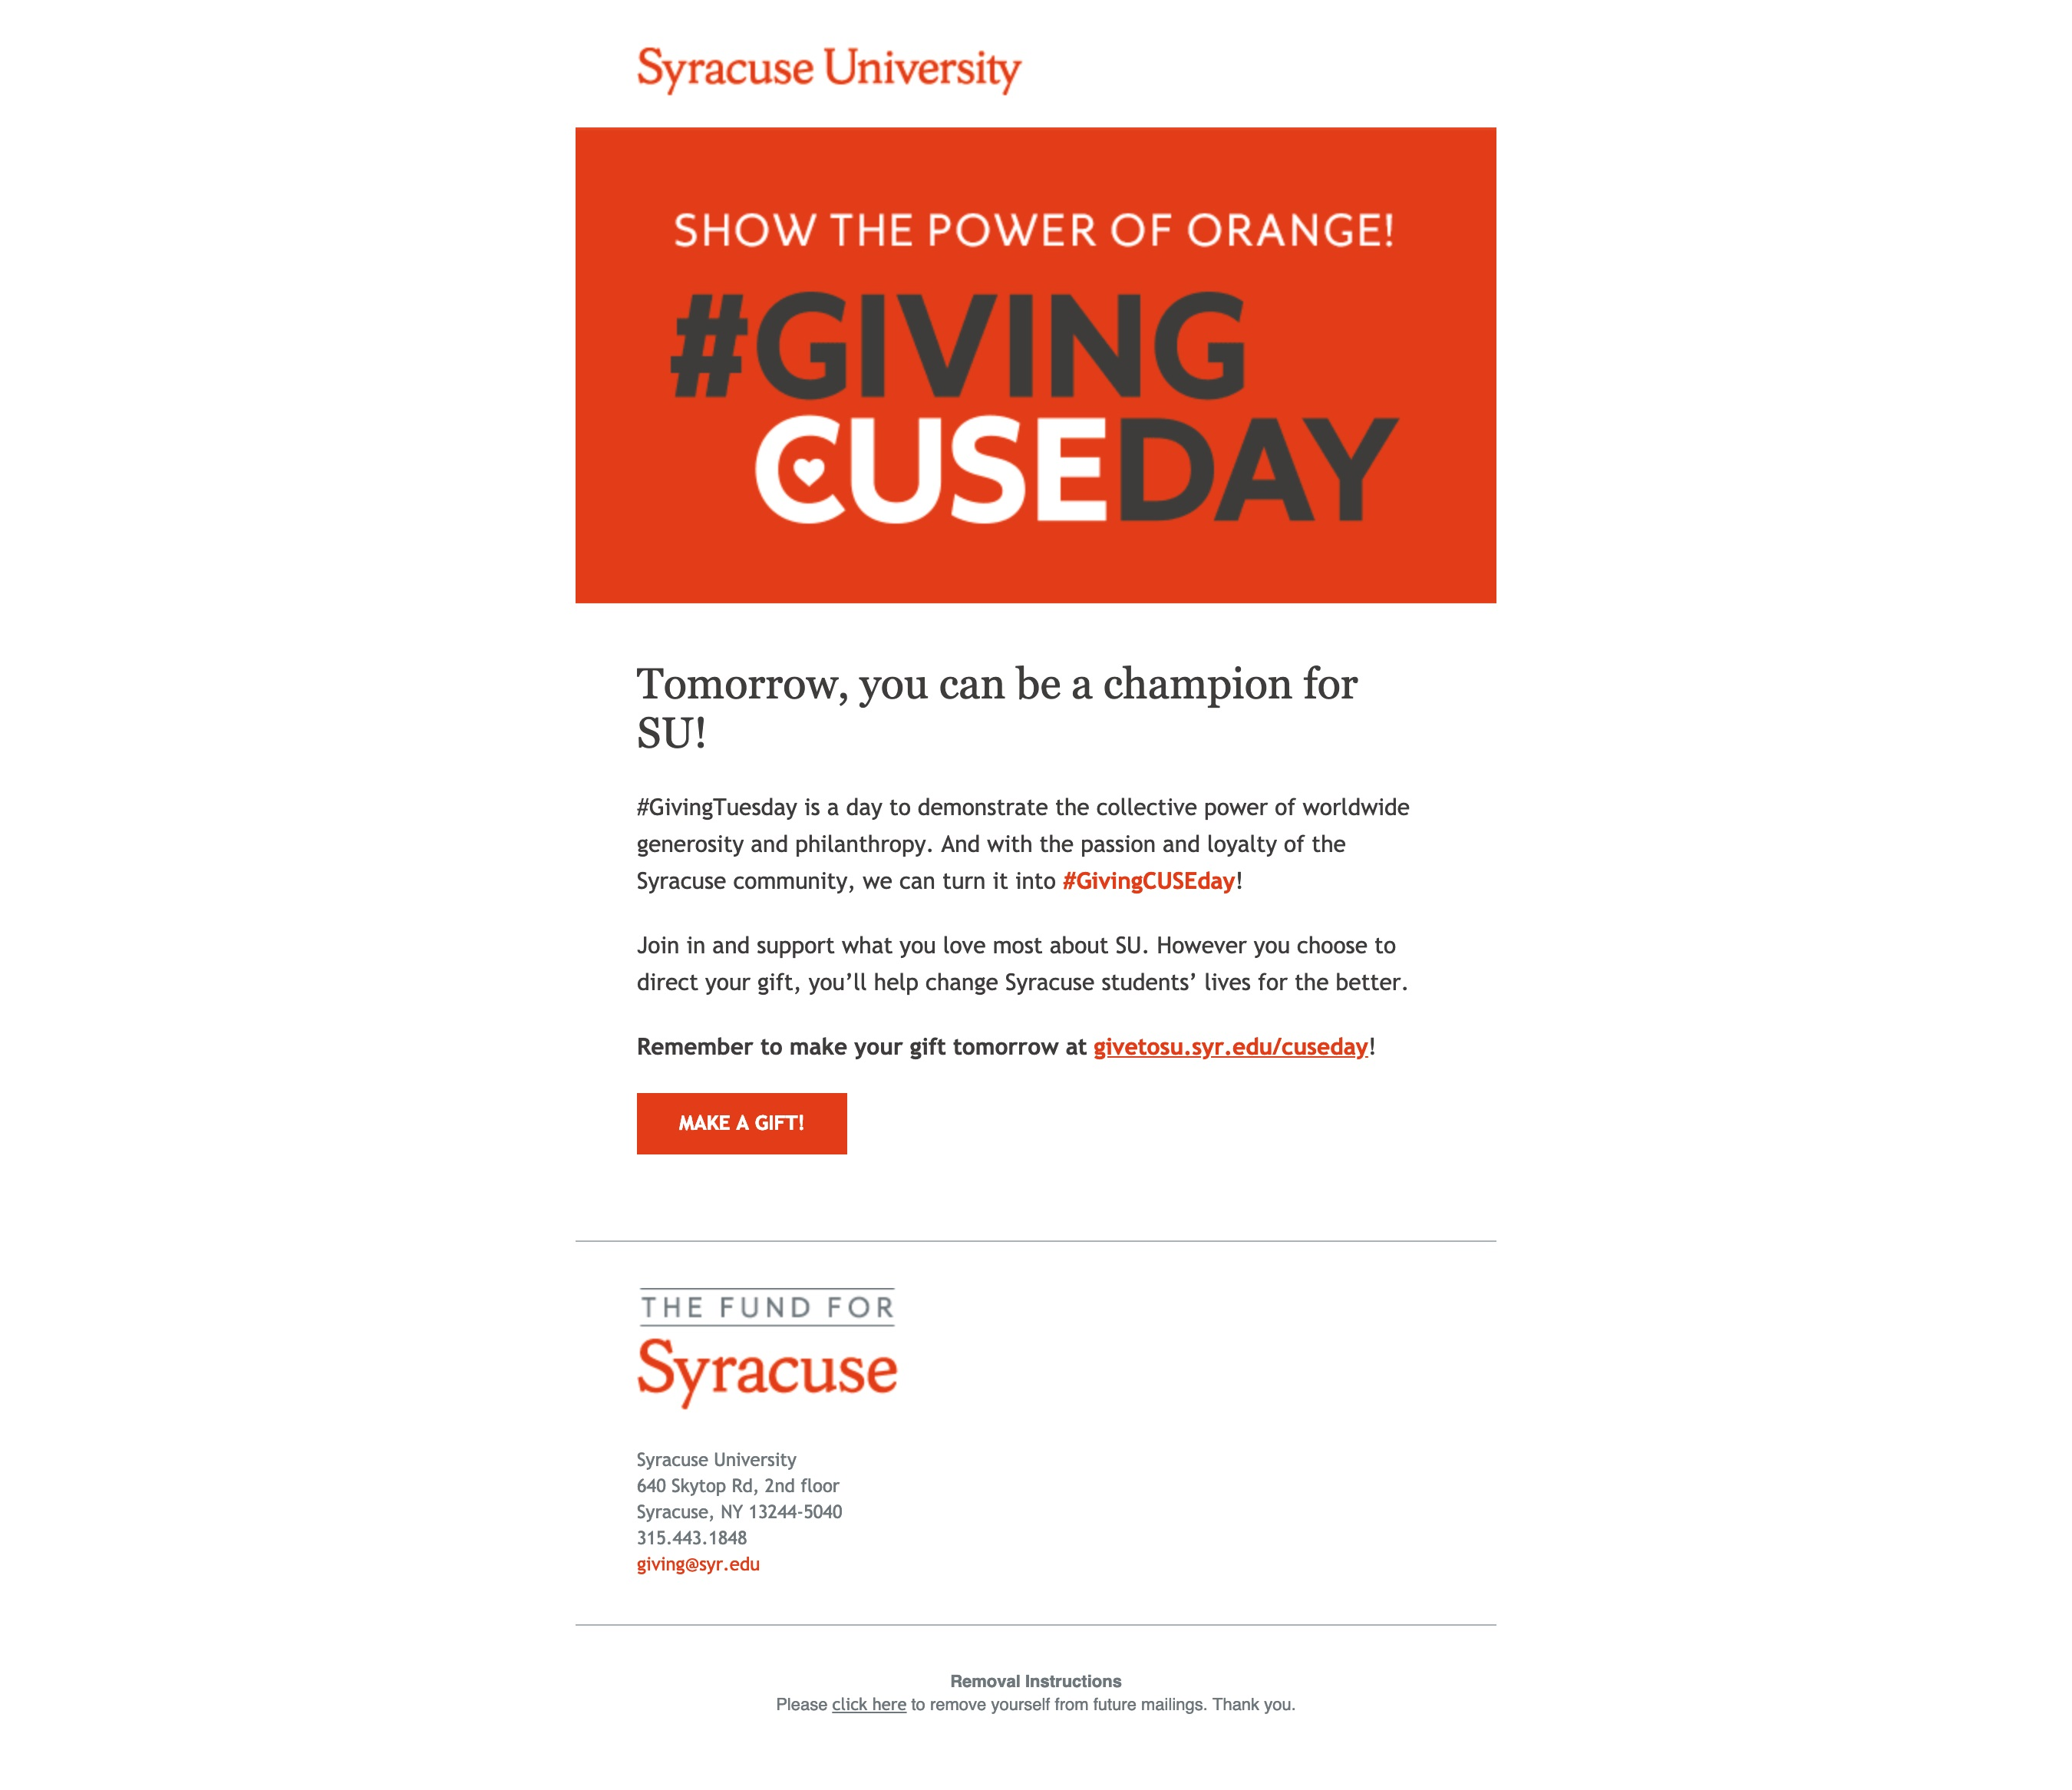 Take it a step further and integrate your email and social media campaigns into one. Check out this recent example from Syracuse University.